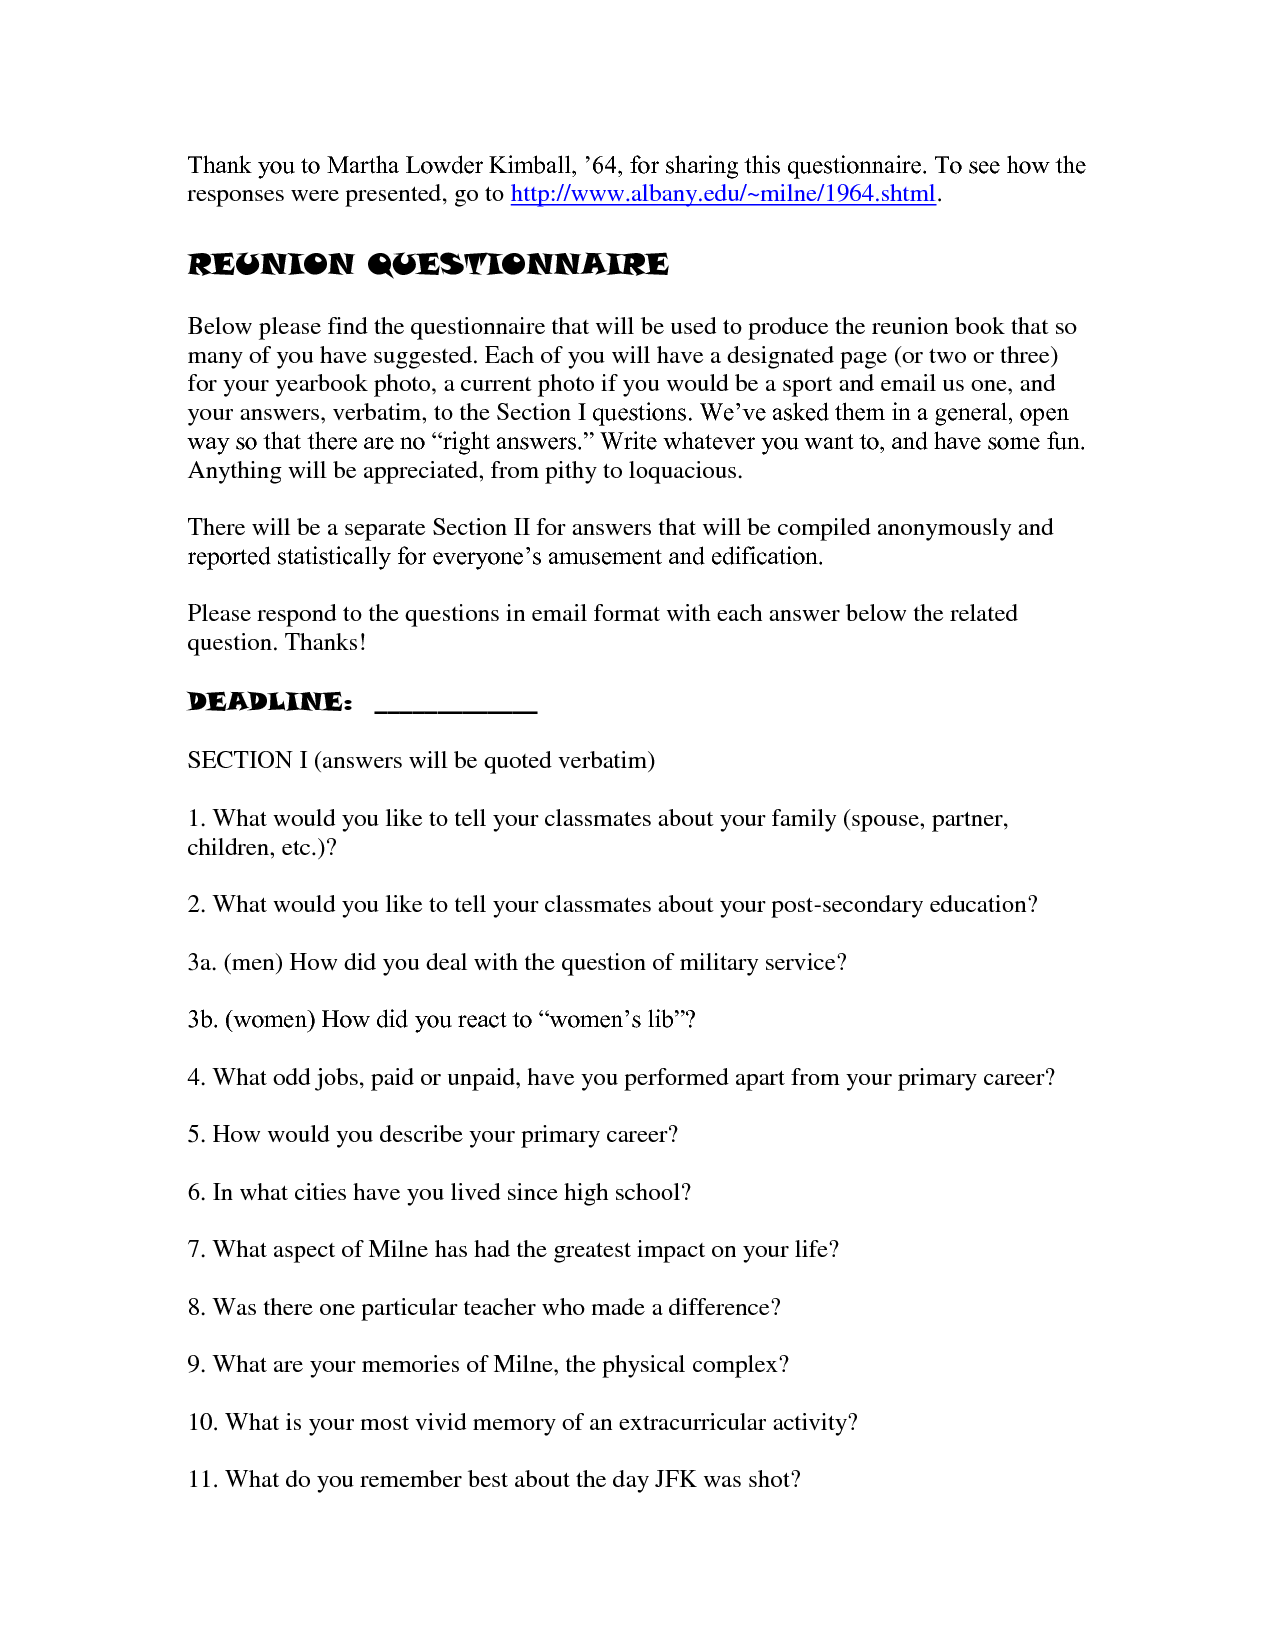 High School Reunion Questionnaire  Reunion Questionnaire  School